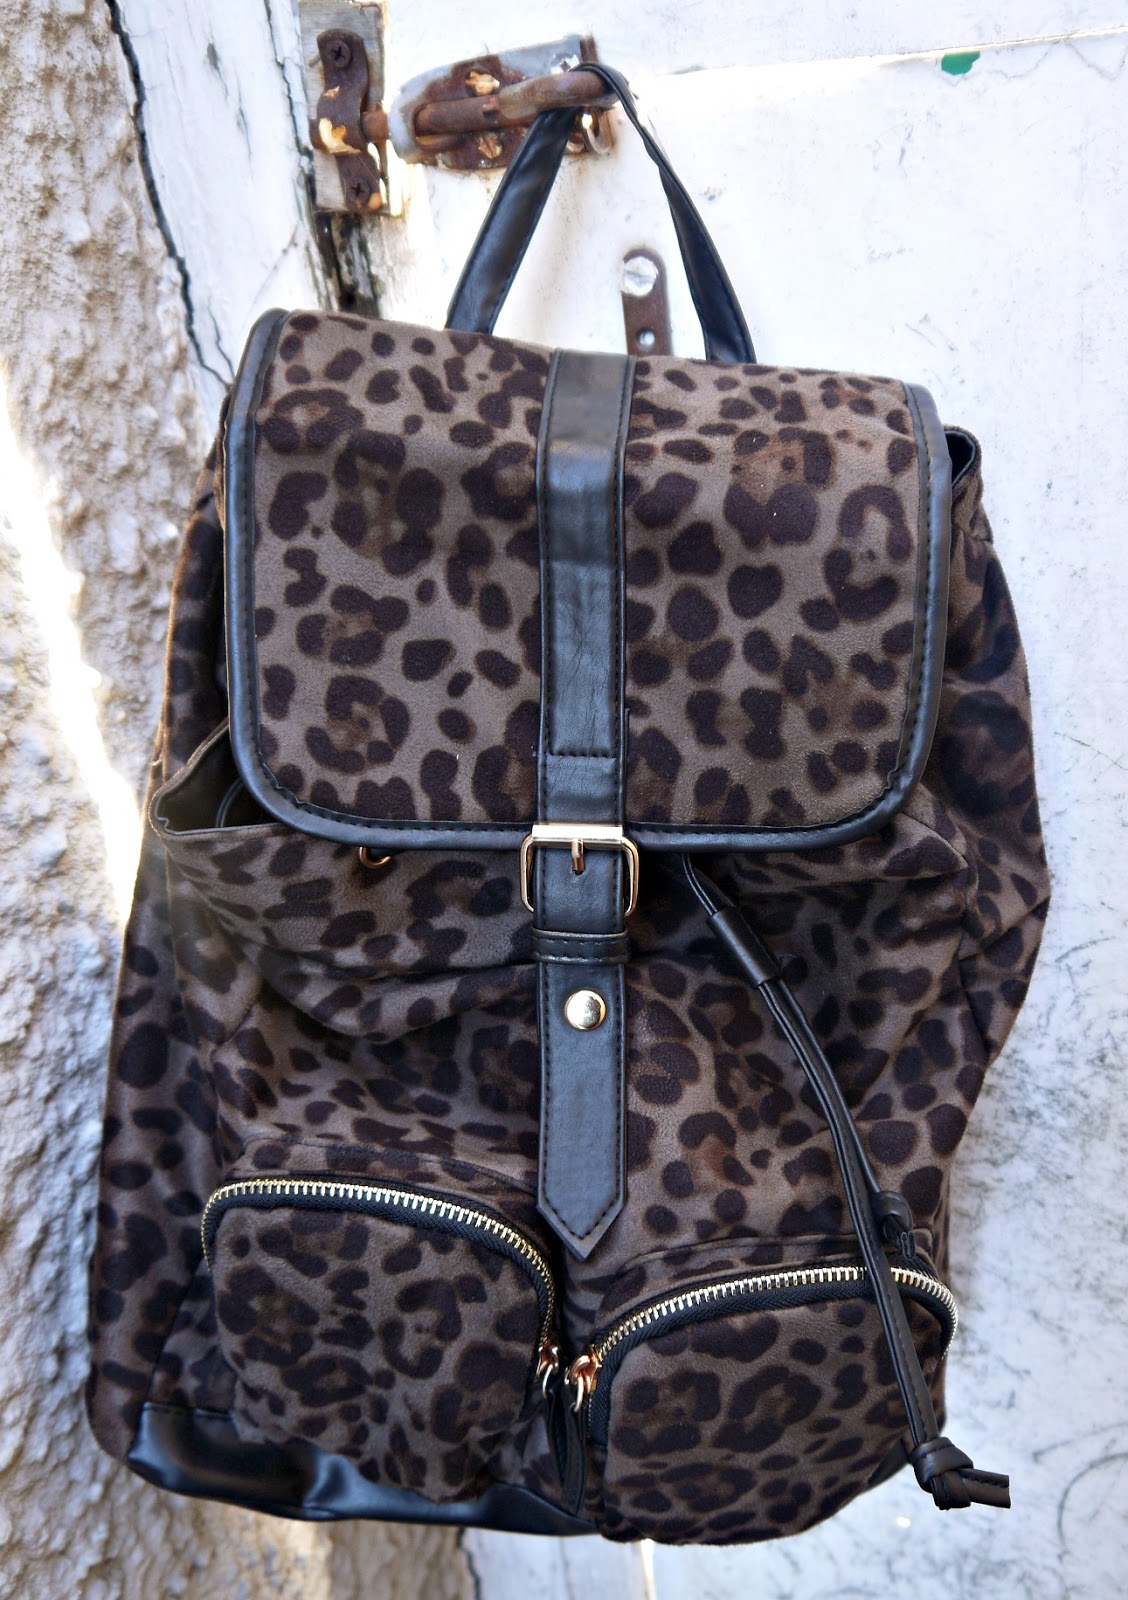 Leopard Print and Faux LeatherTrim Rucksack from Primark